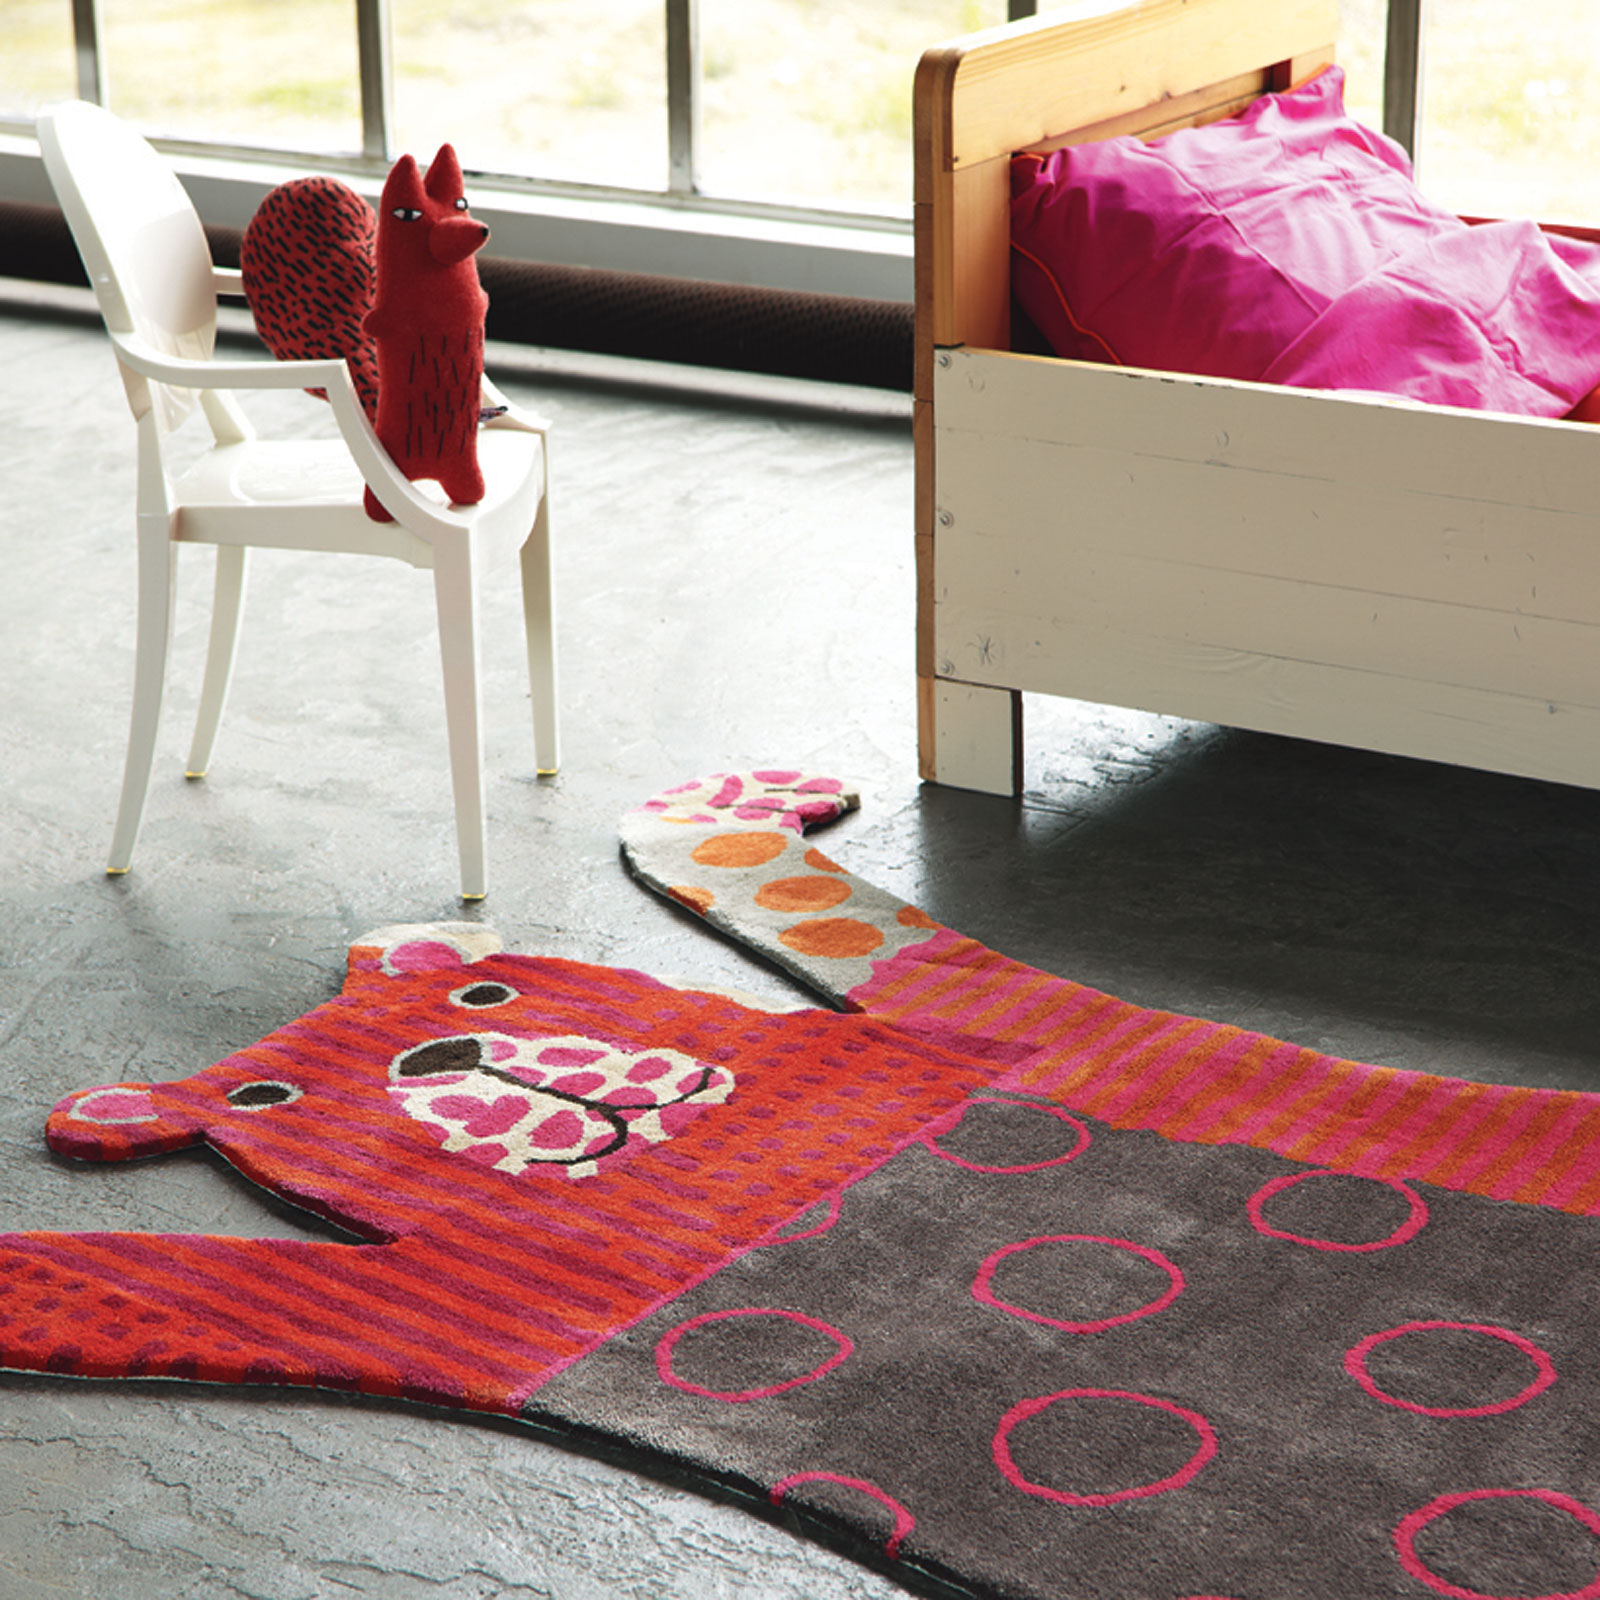 kids rugs and playmats stylish designs for childrens bedrooms